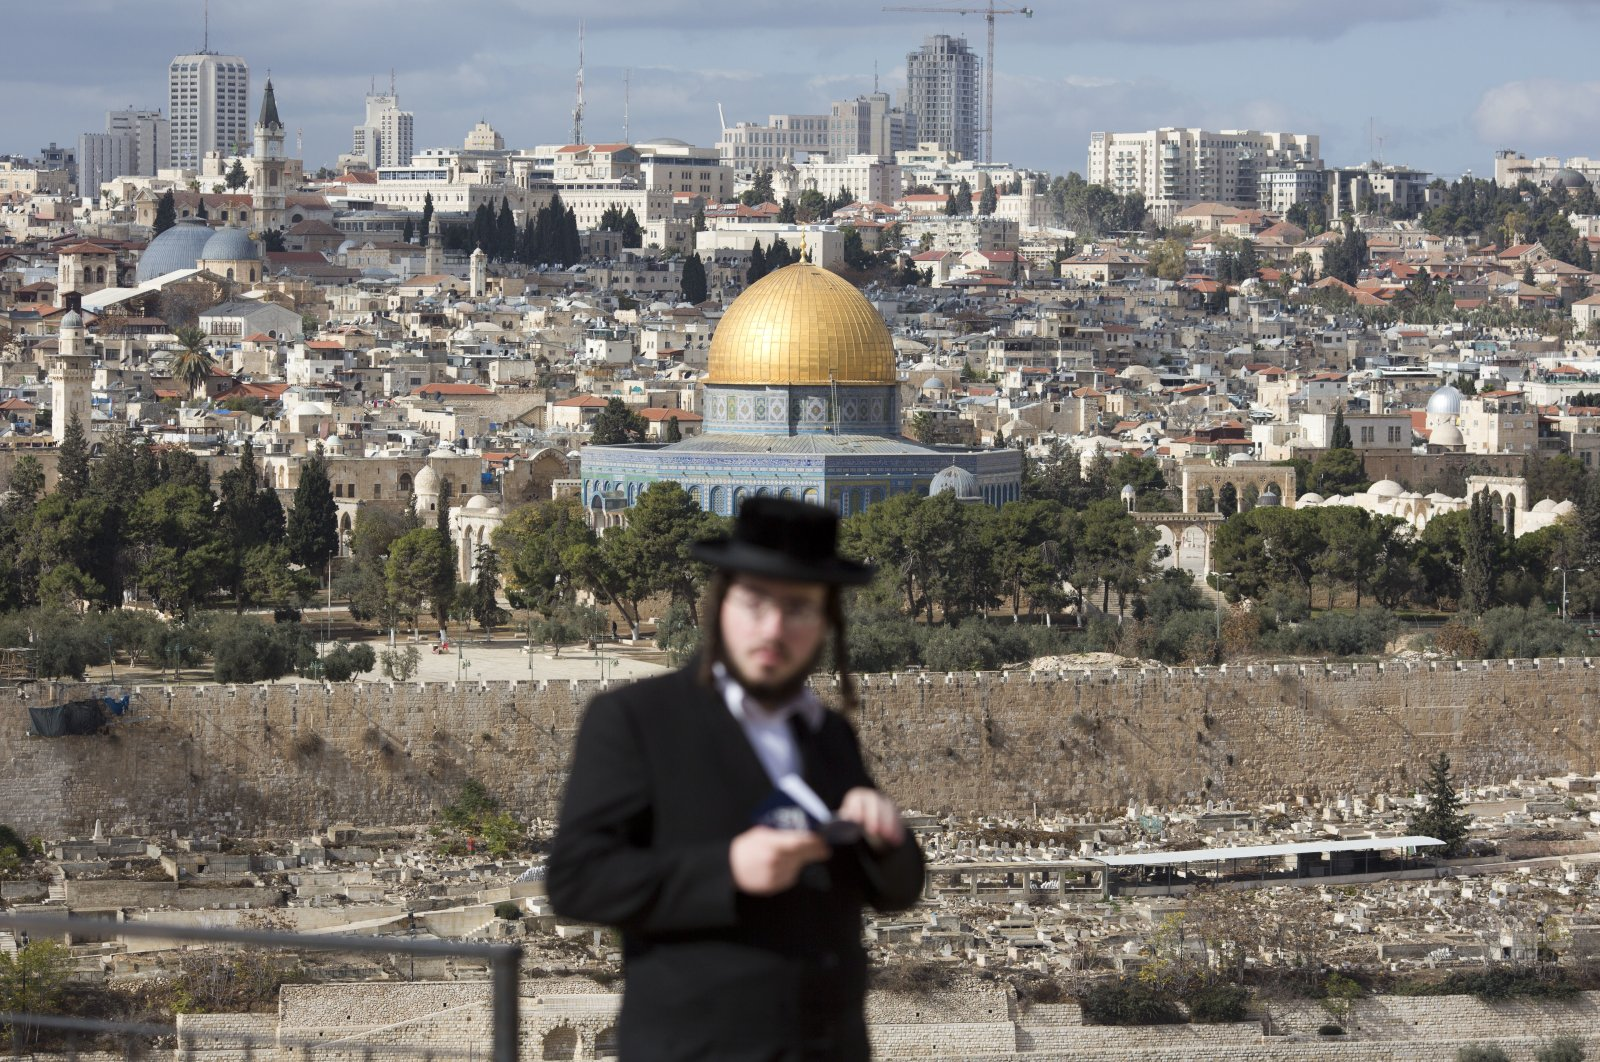 An orthodox Jewish man reads from a holy book in a cemetery near the Dome of the Rock Mosque in the Al Aqsa Mosque compound in Jerusalem's Old City, Thursday, Dec. 7, 2017. (AP Photo)